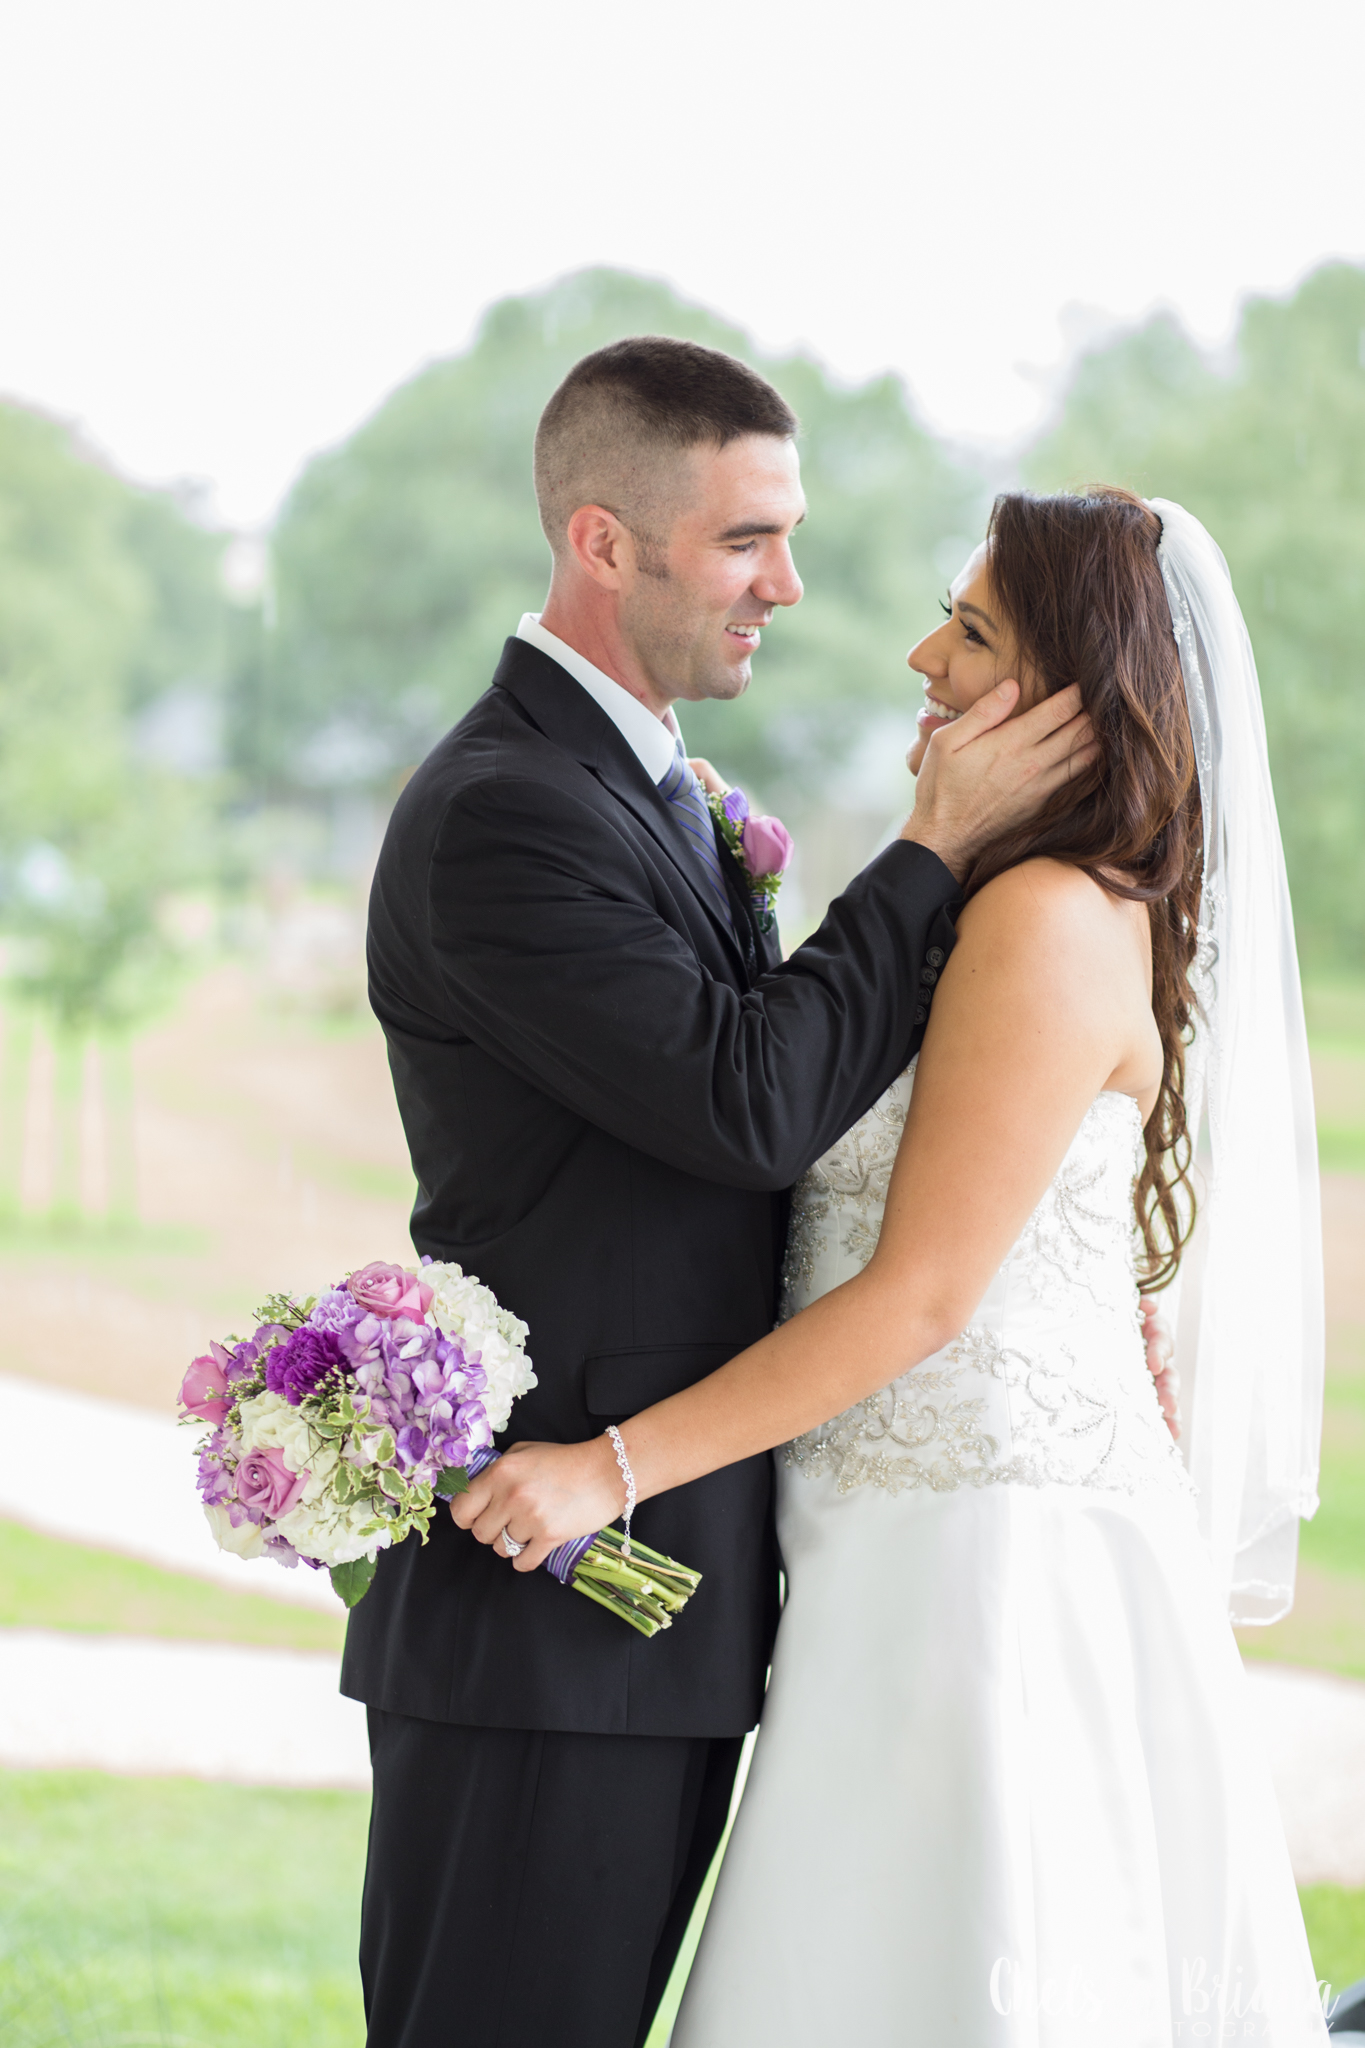 bride-and-groom-hands-on-face-pose